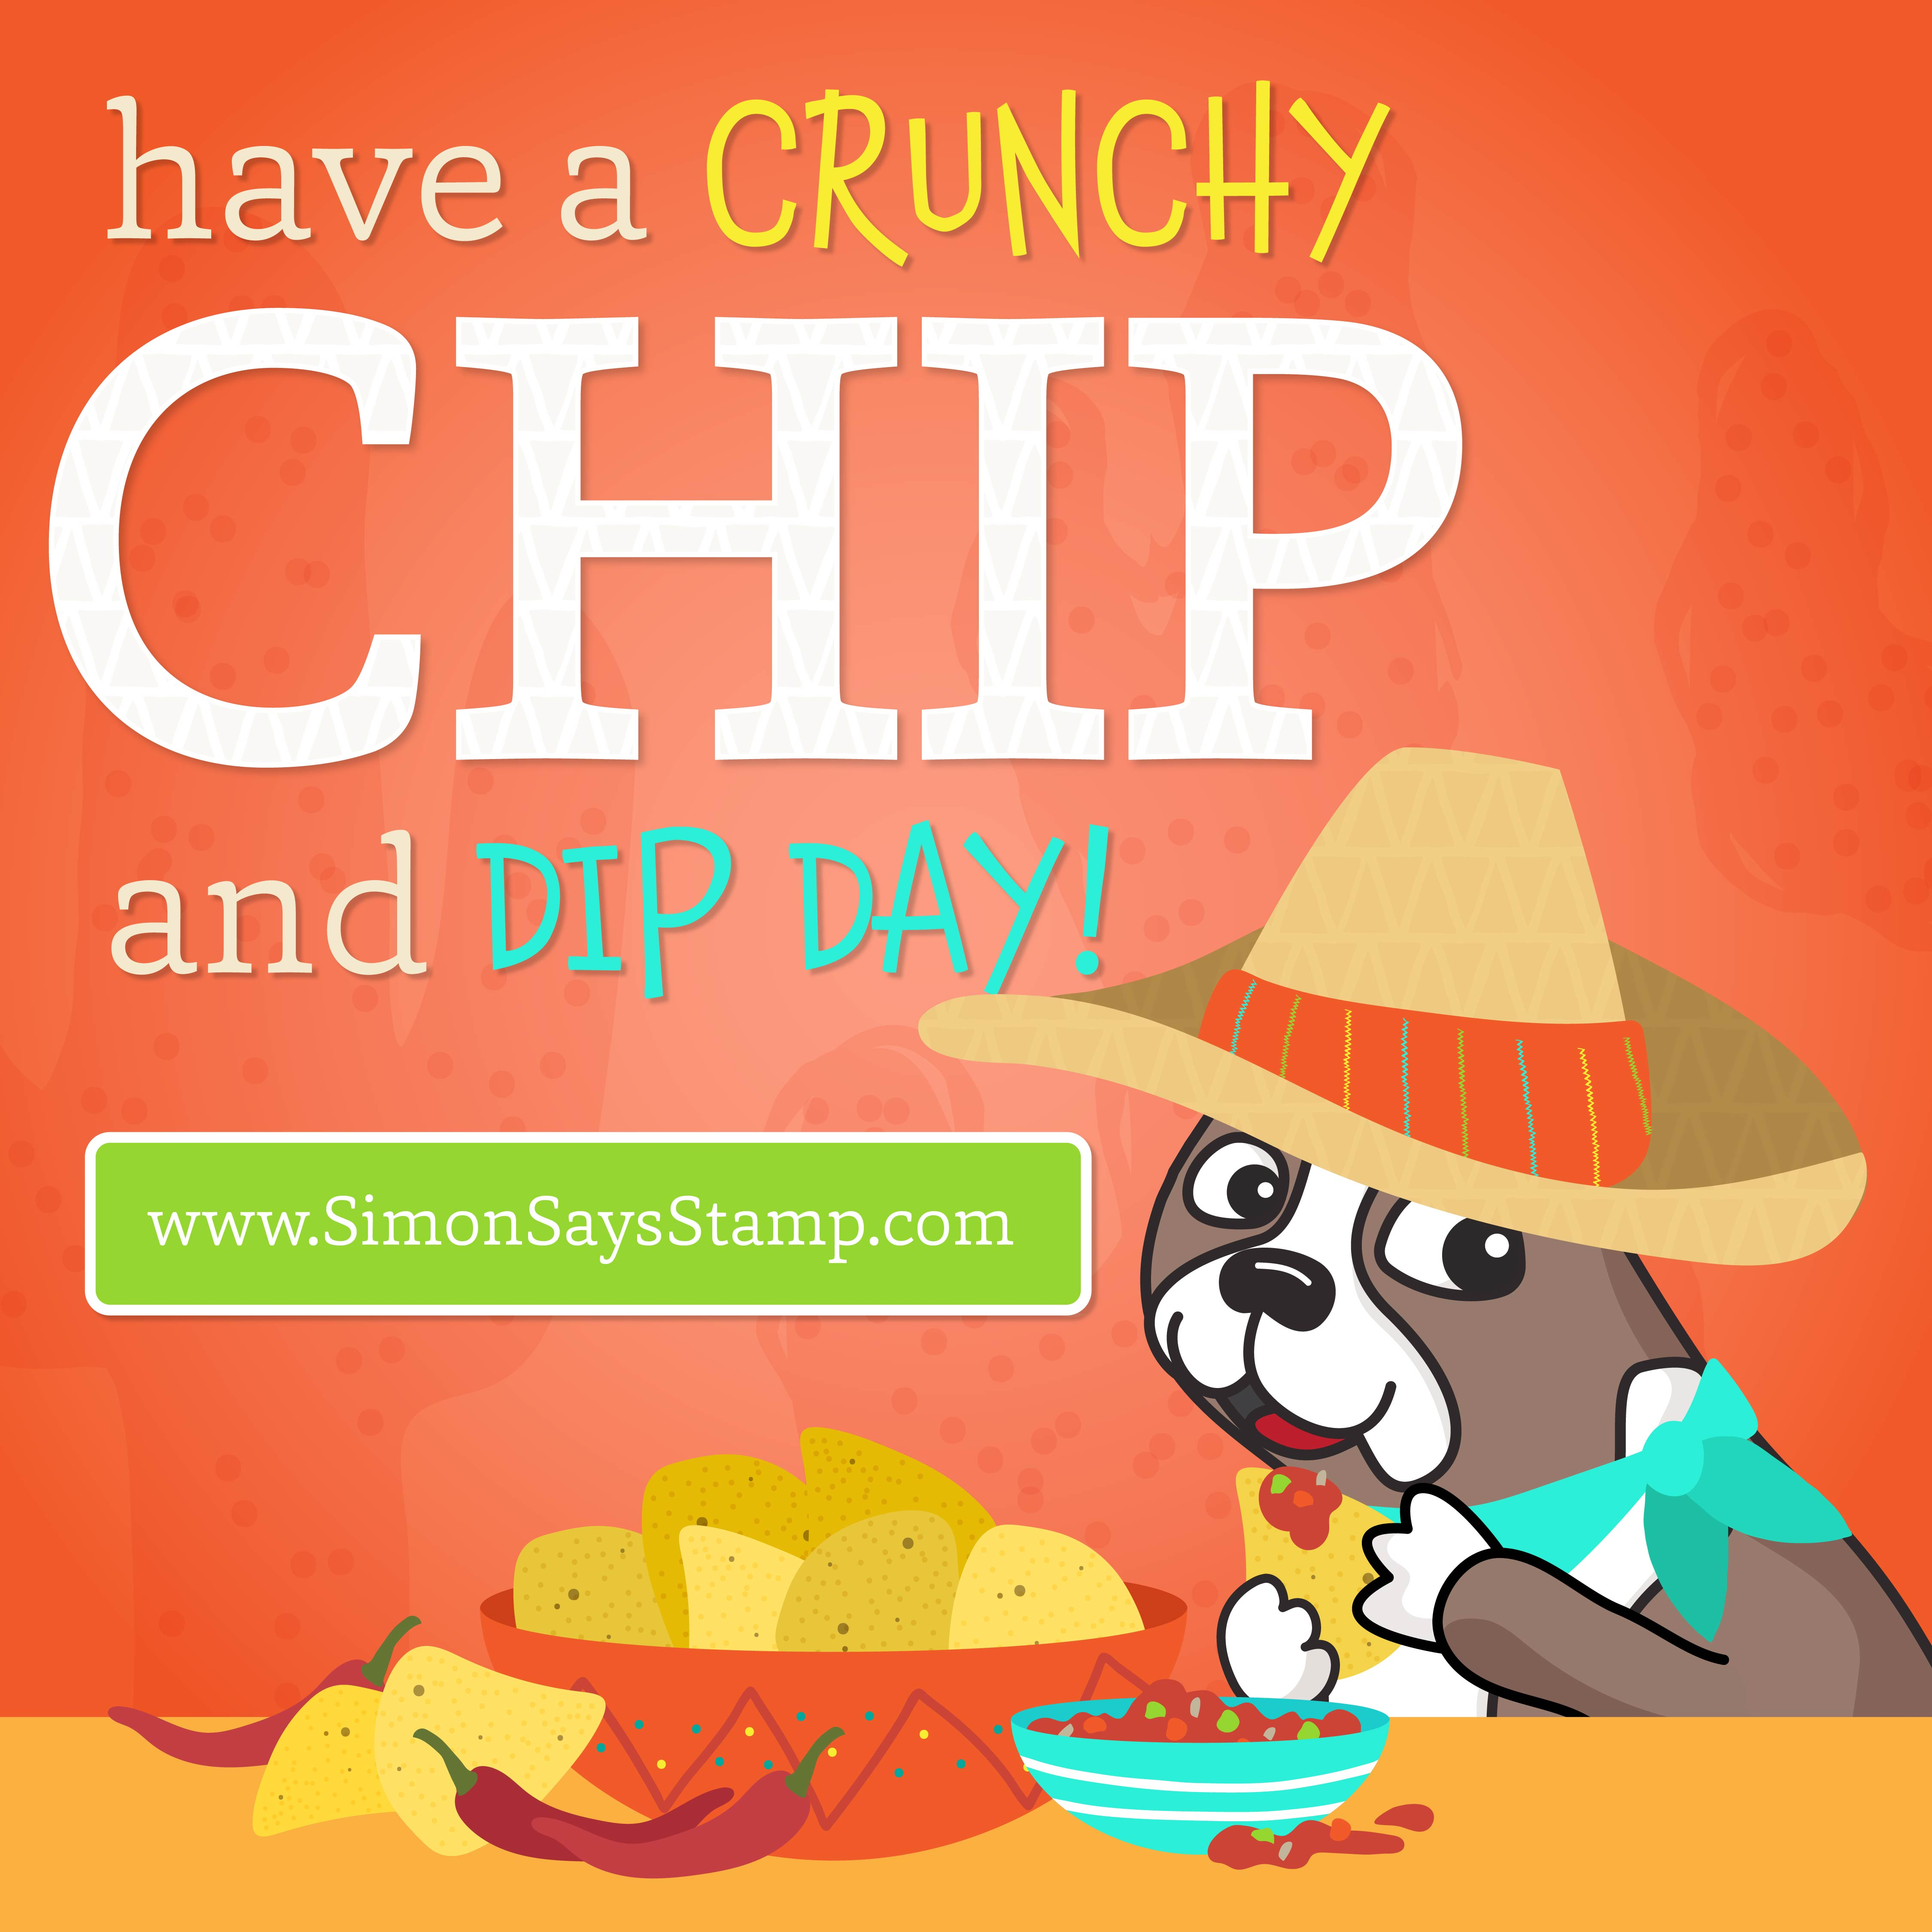 chip-and-dip-day_1080-01